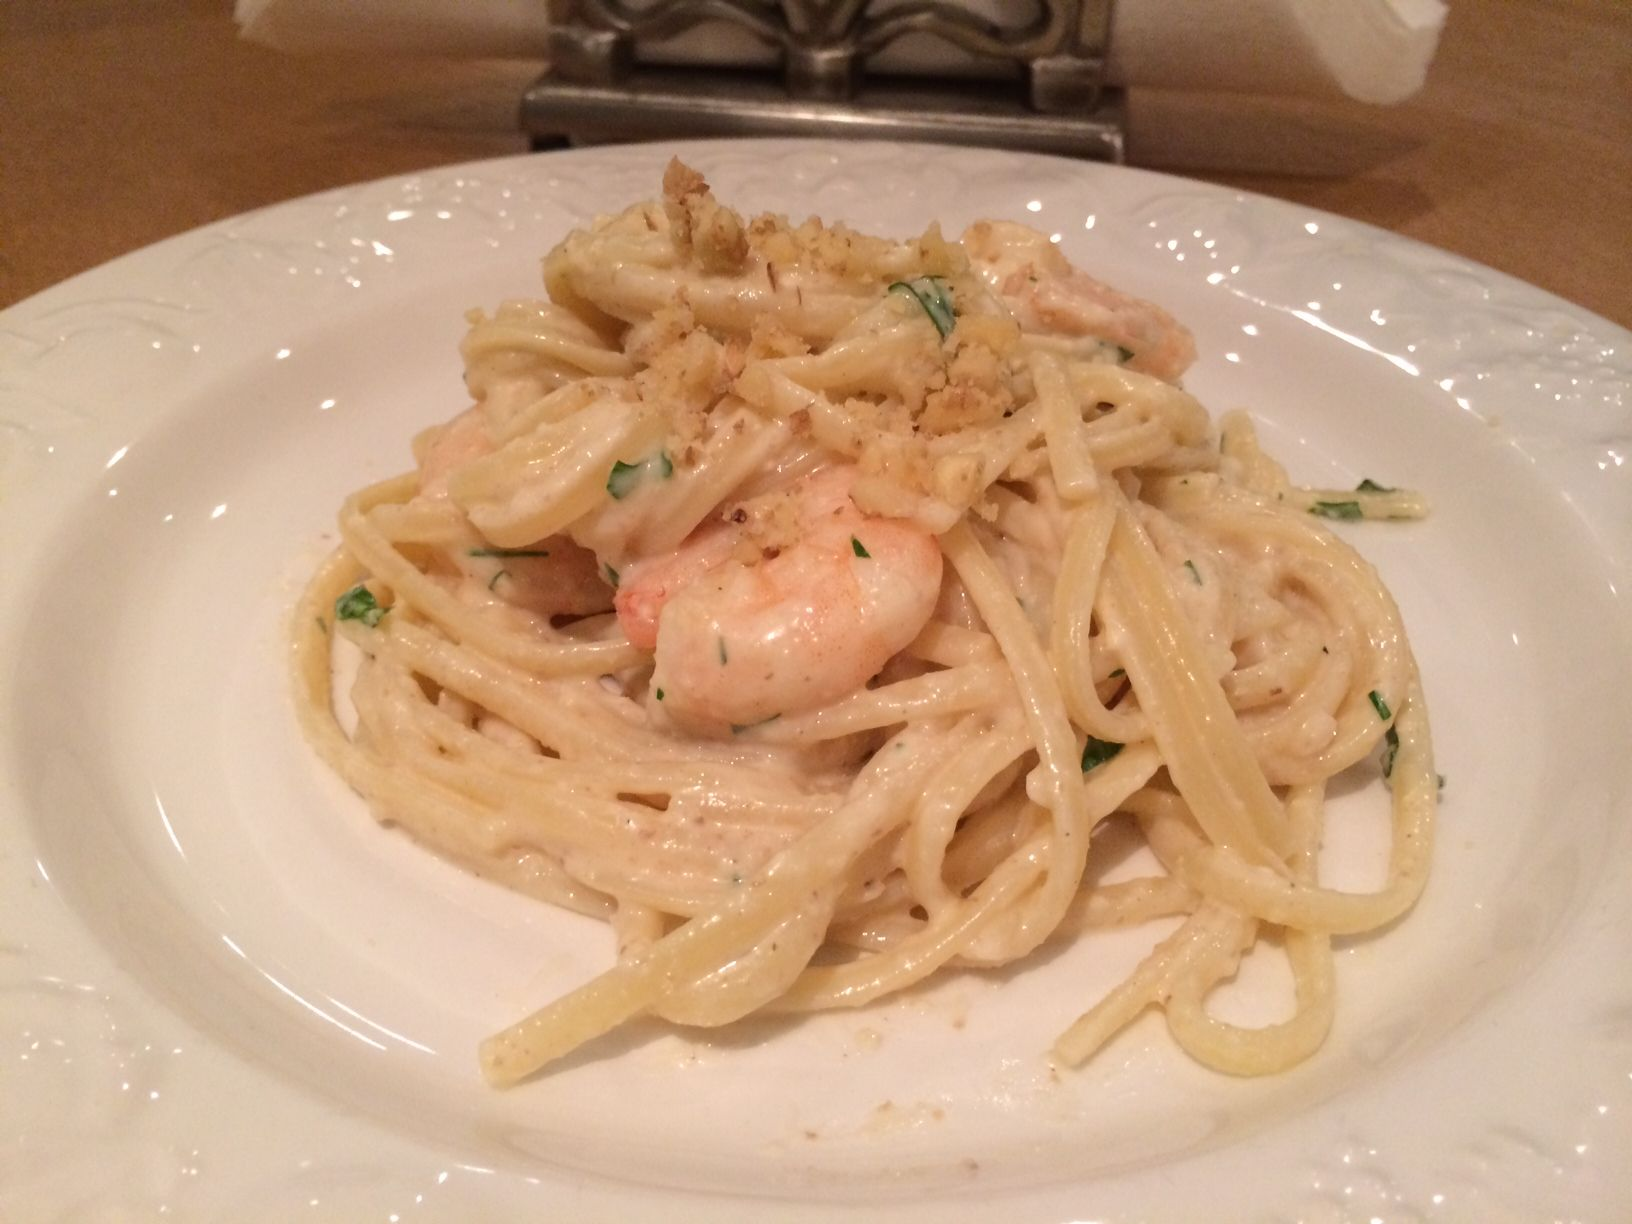 Indulge yourself with a portion of #Linguine with #prawn tails and #walnuts...mmm